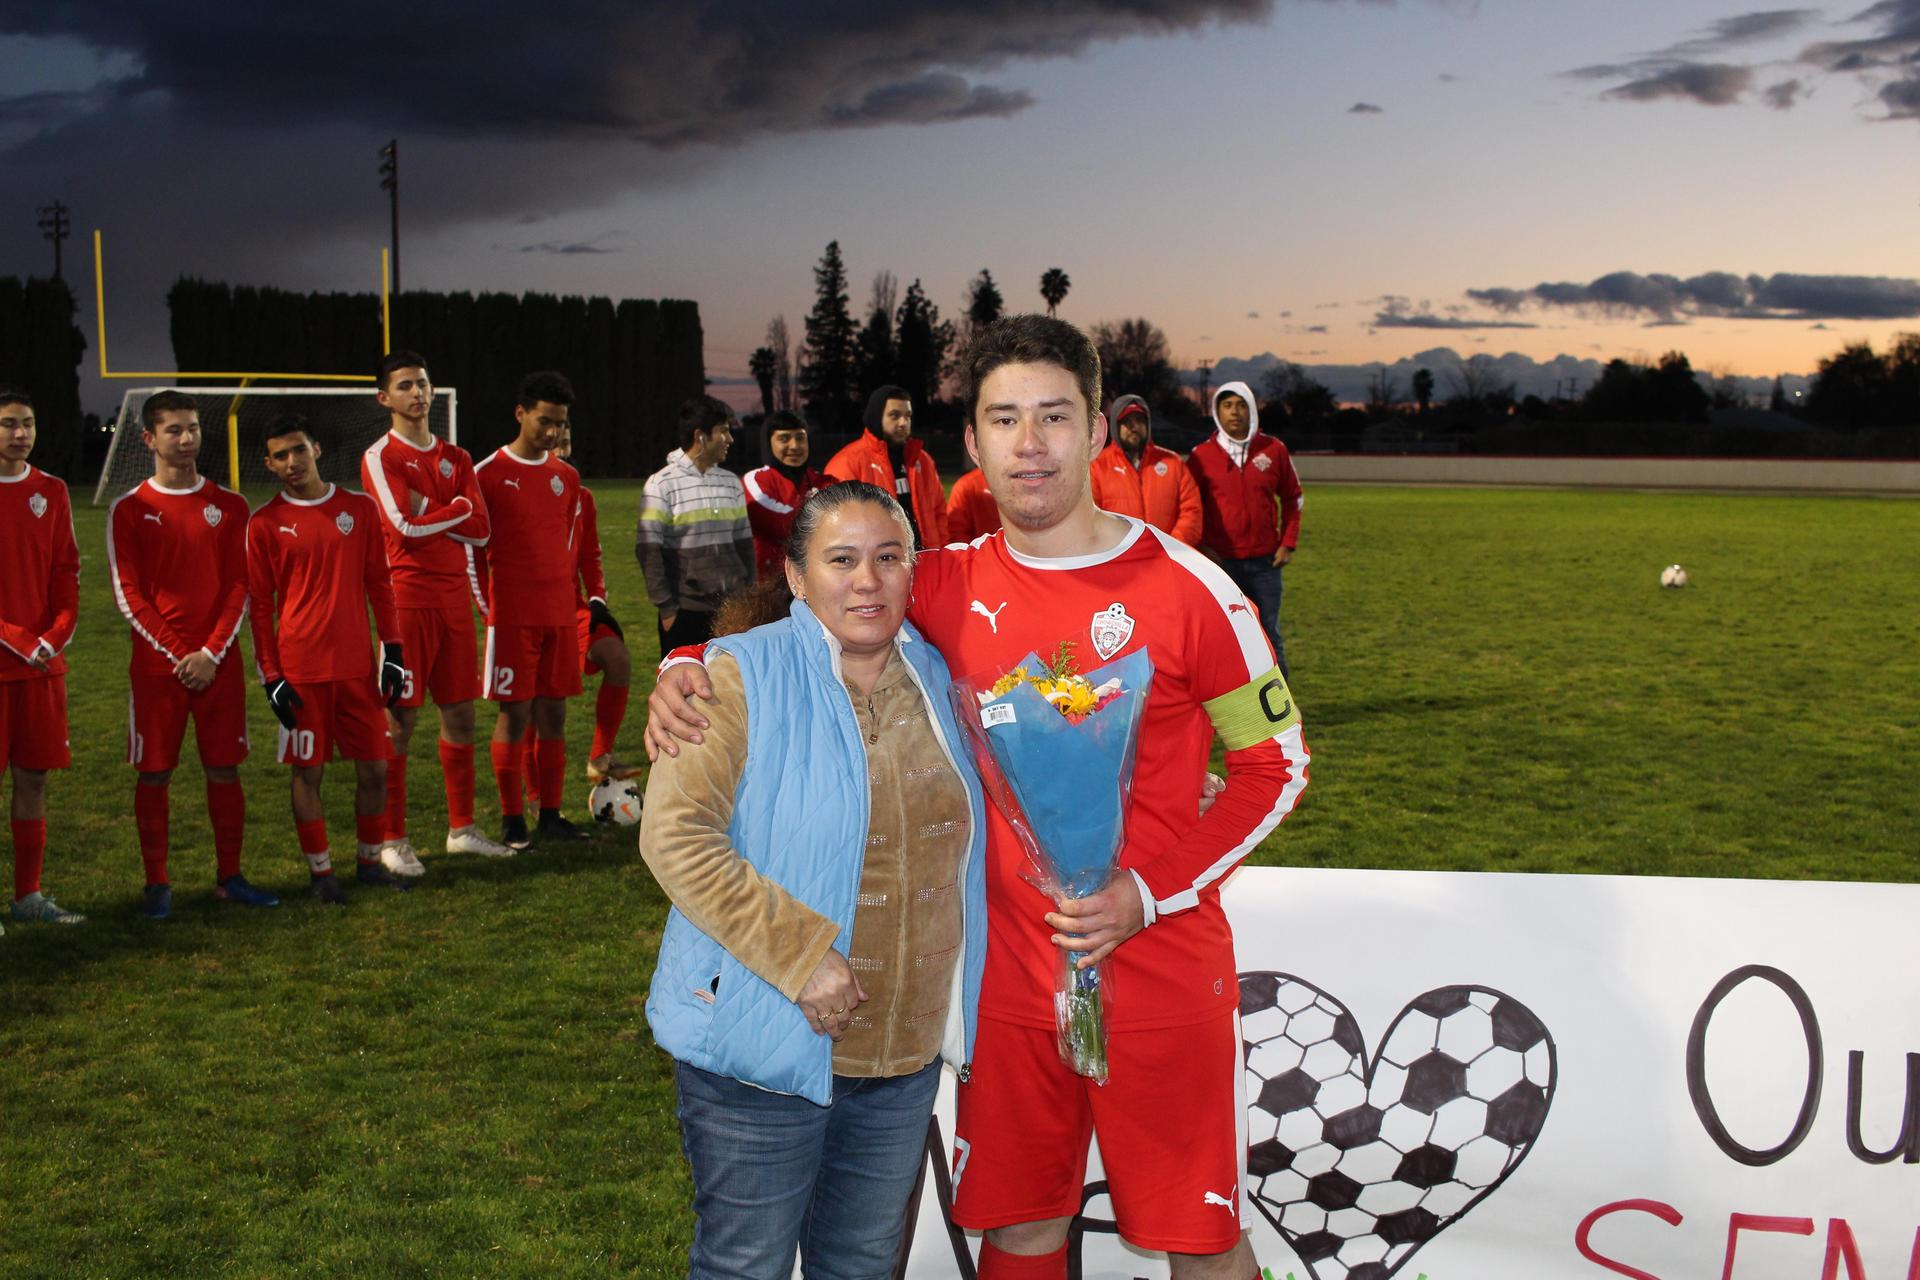 Ivan Gomez at Soccer Senior Night